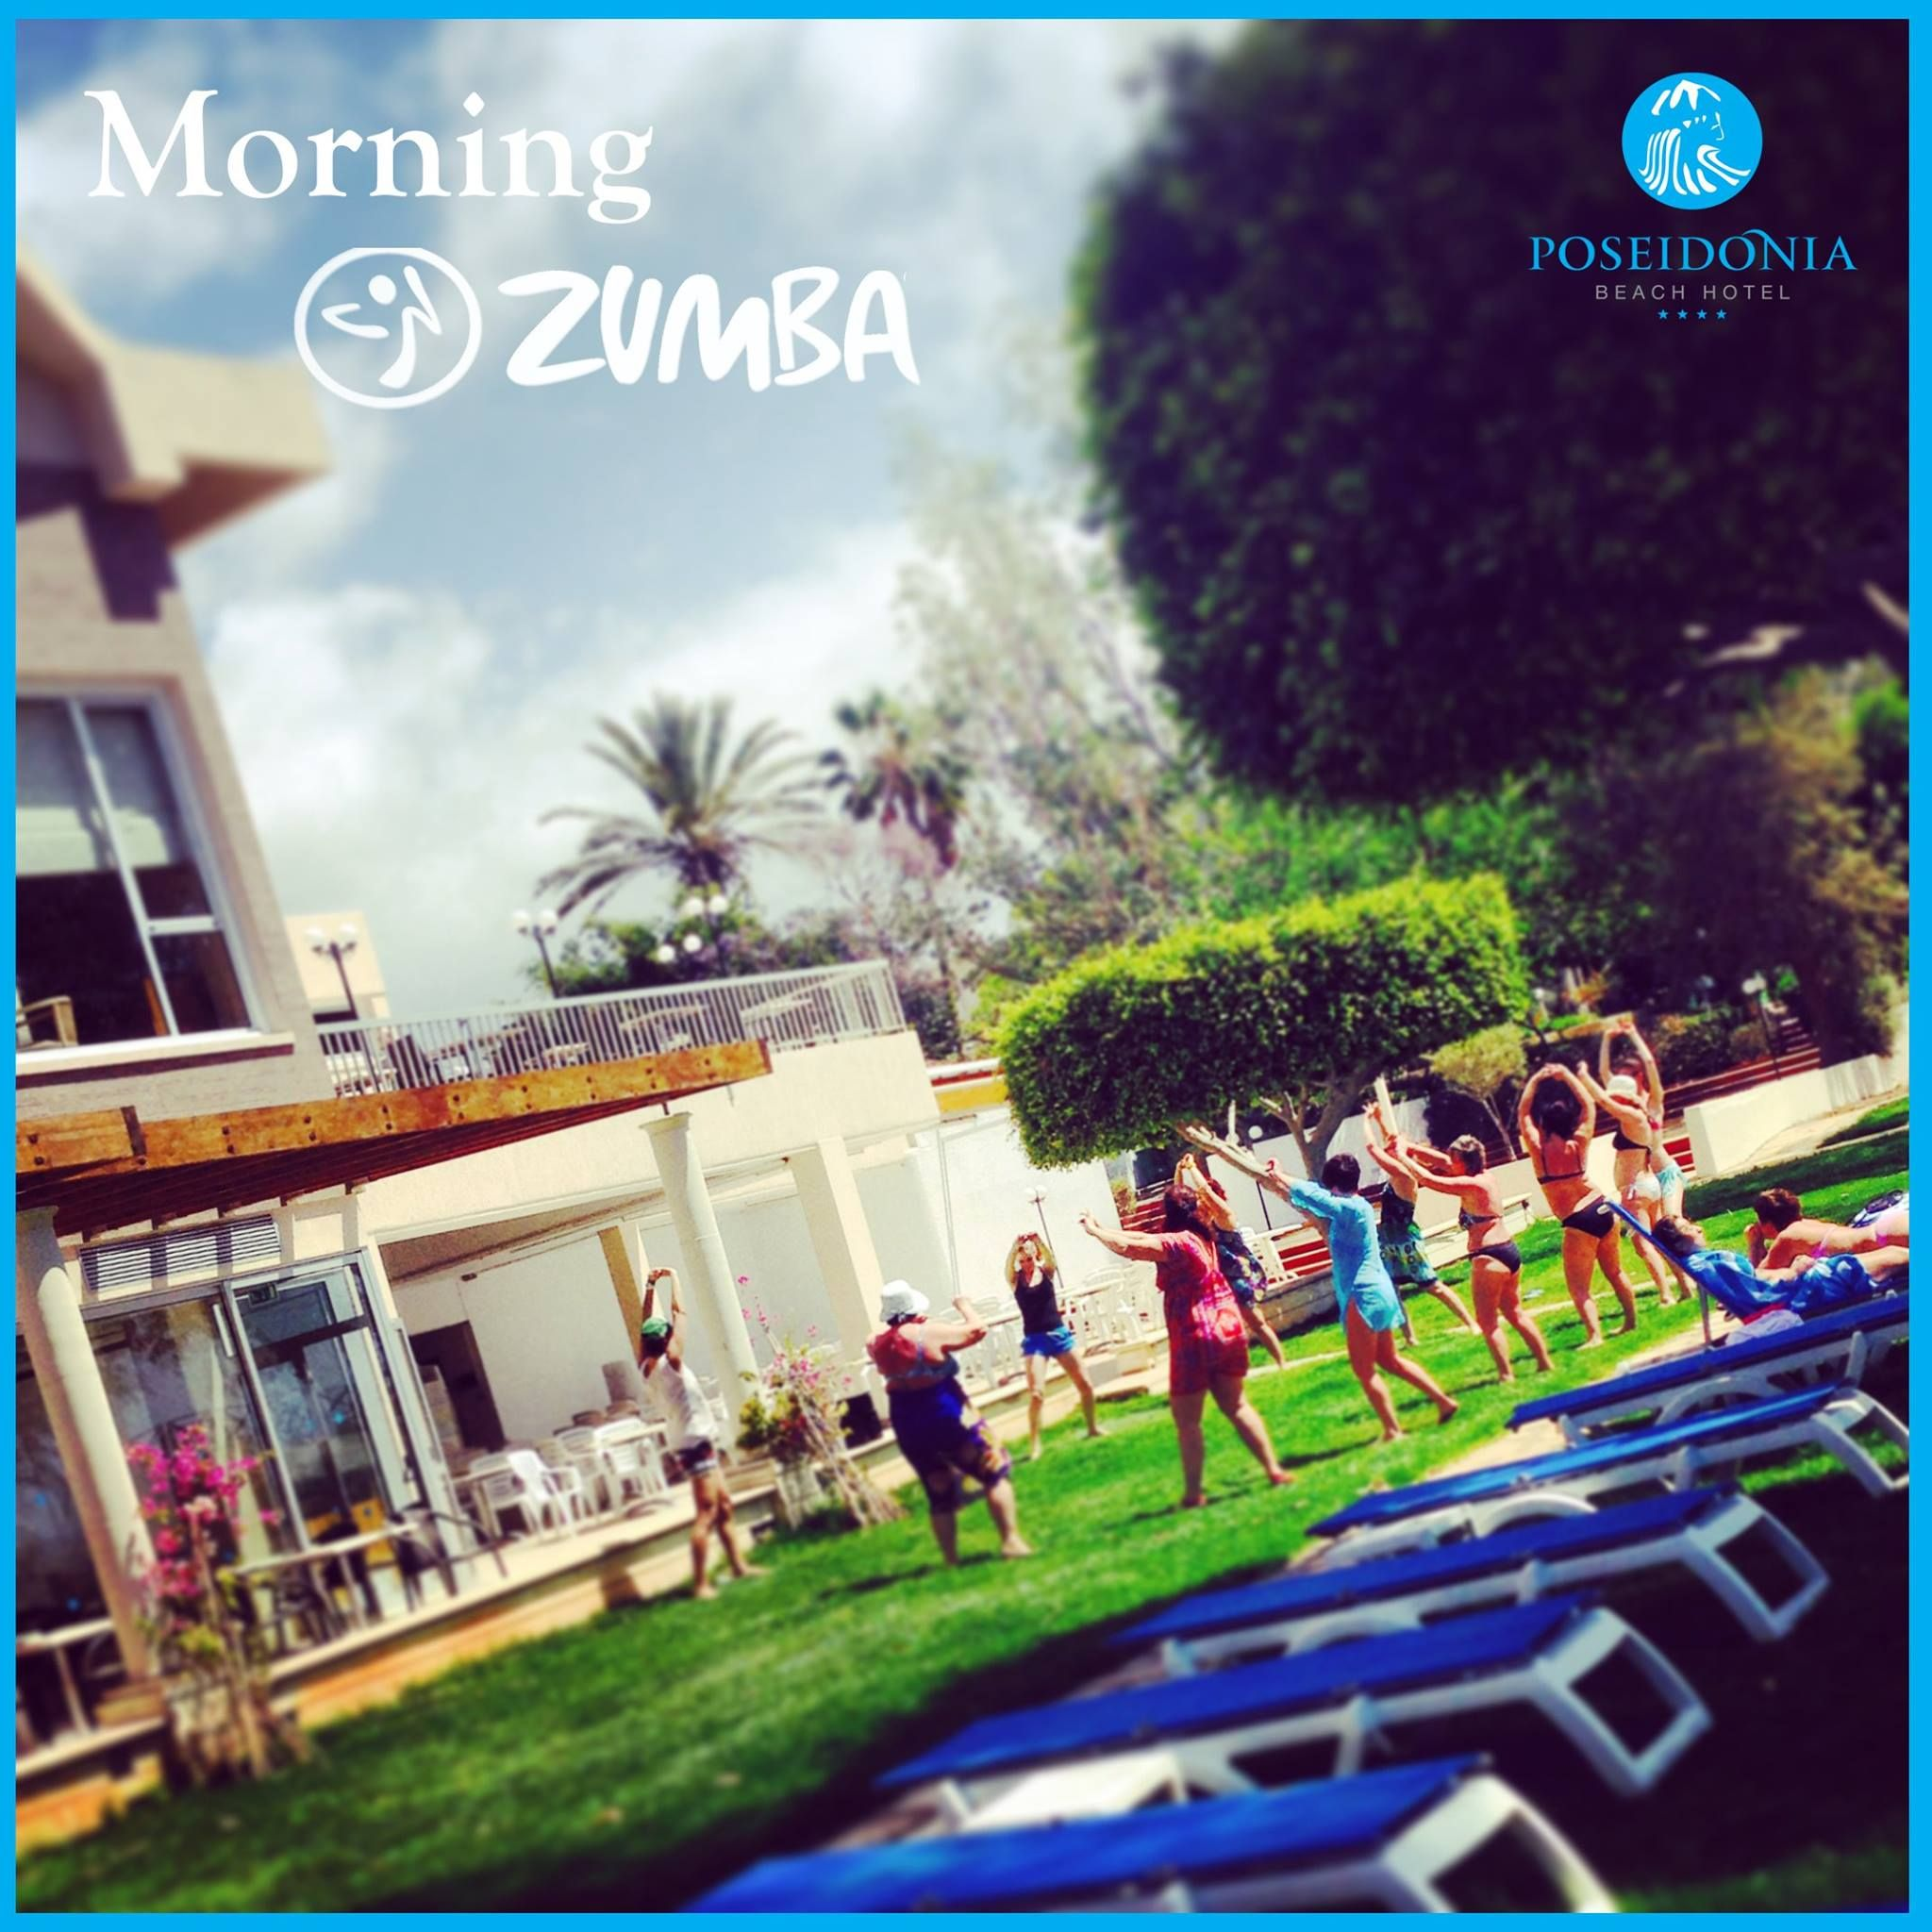 Good Morning Zumba! Poseidonia Beach Hotel... #Fitness & #Fun in our #SeaFront #Garden..#Newmanagement — at Poseidonia Beach Hotel.